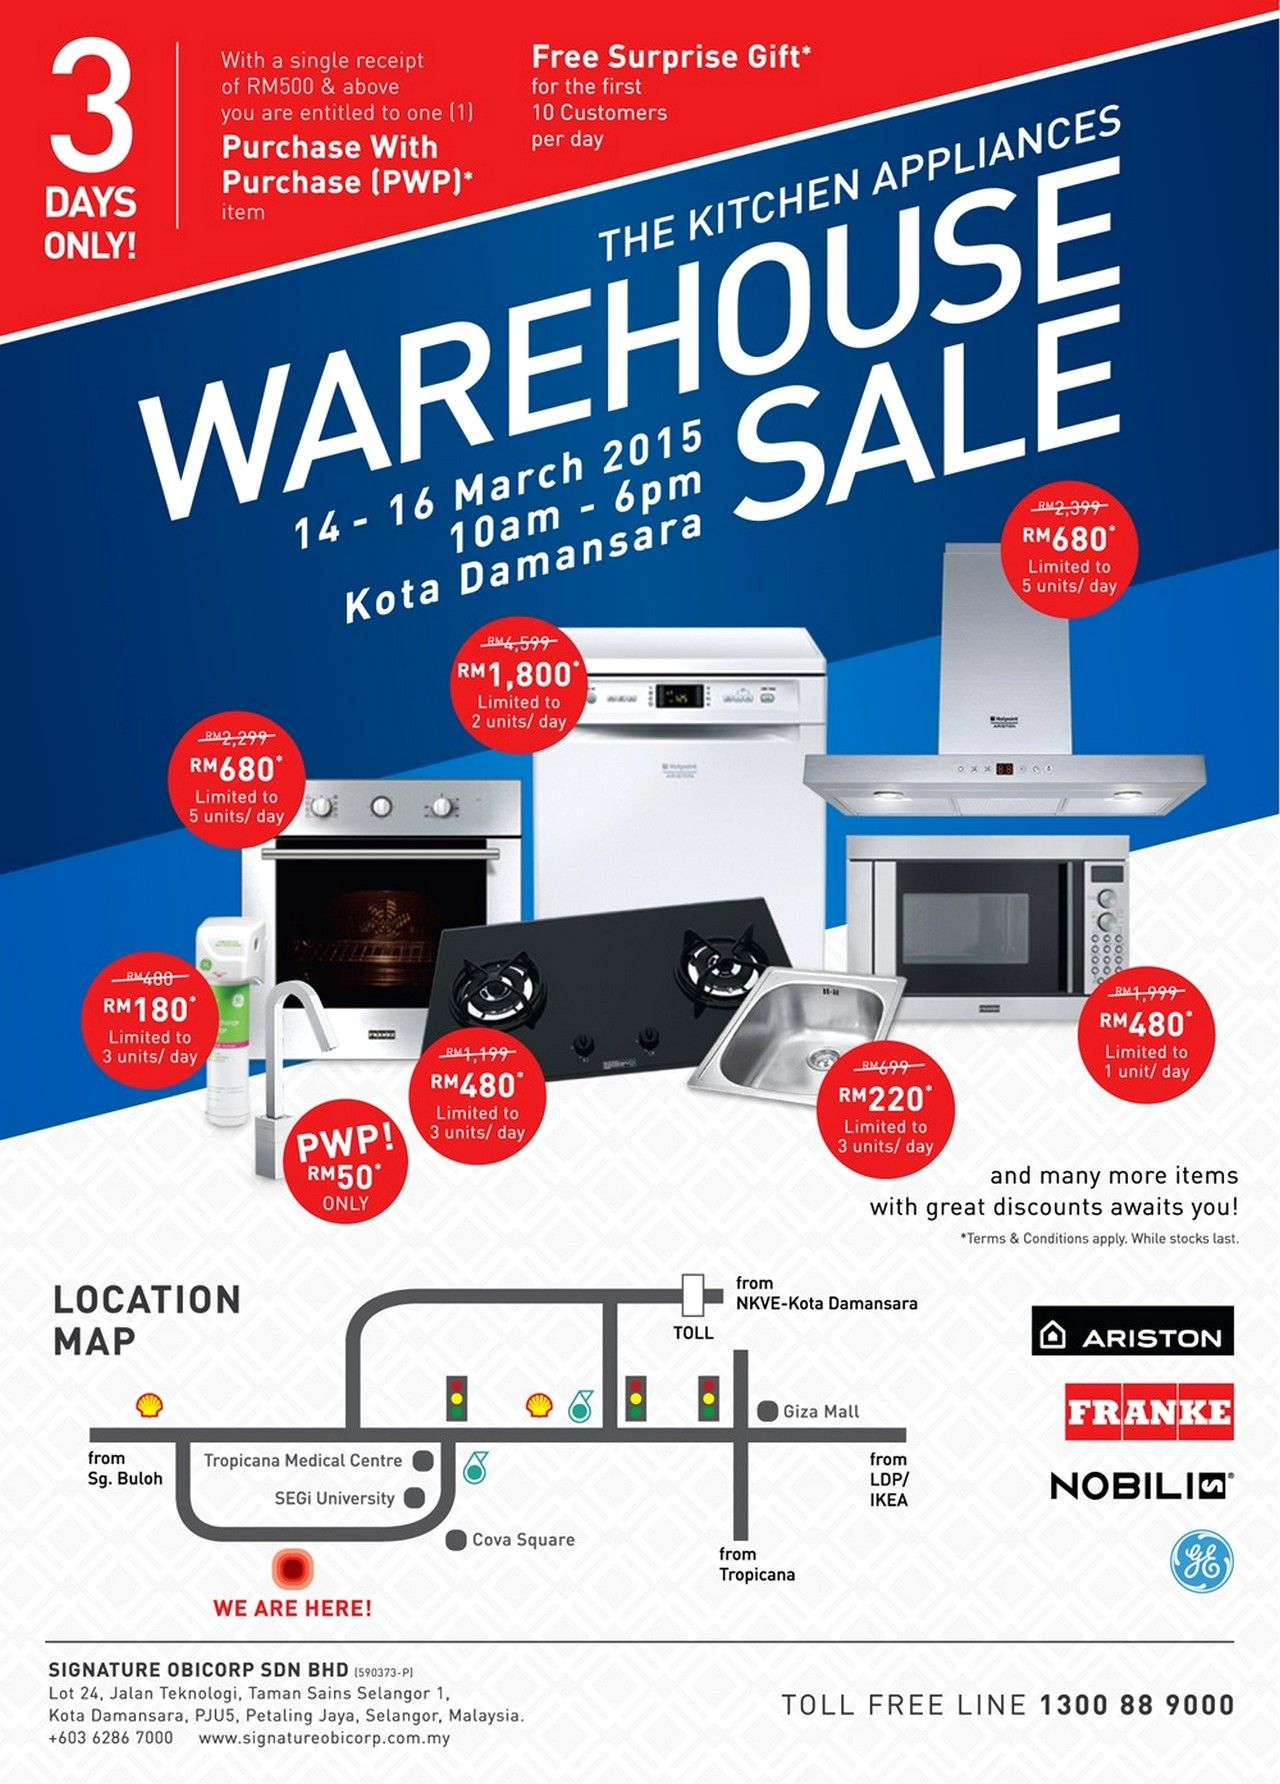 Uncategorized Warehouse Kitchen Appliances 14 16 mar 2015 signature kitchen warehouse sale for appliances accessories clearance